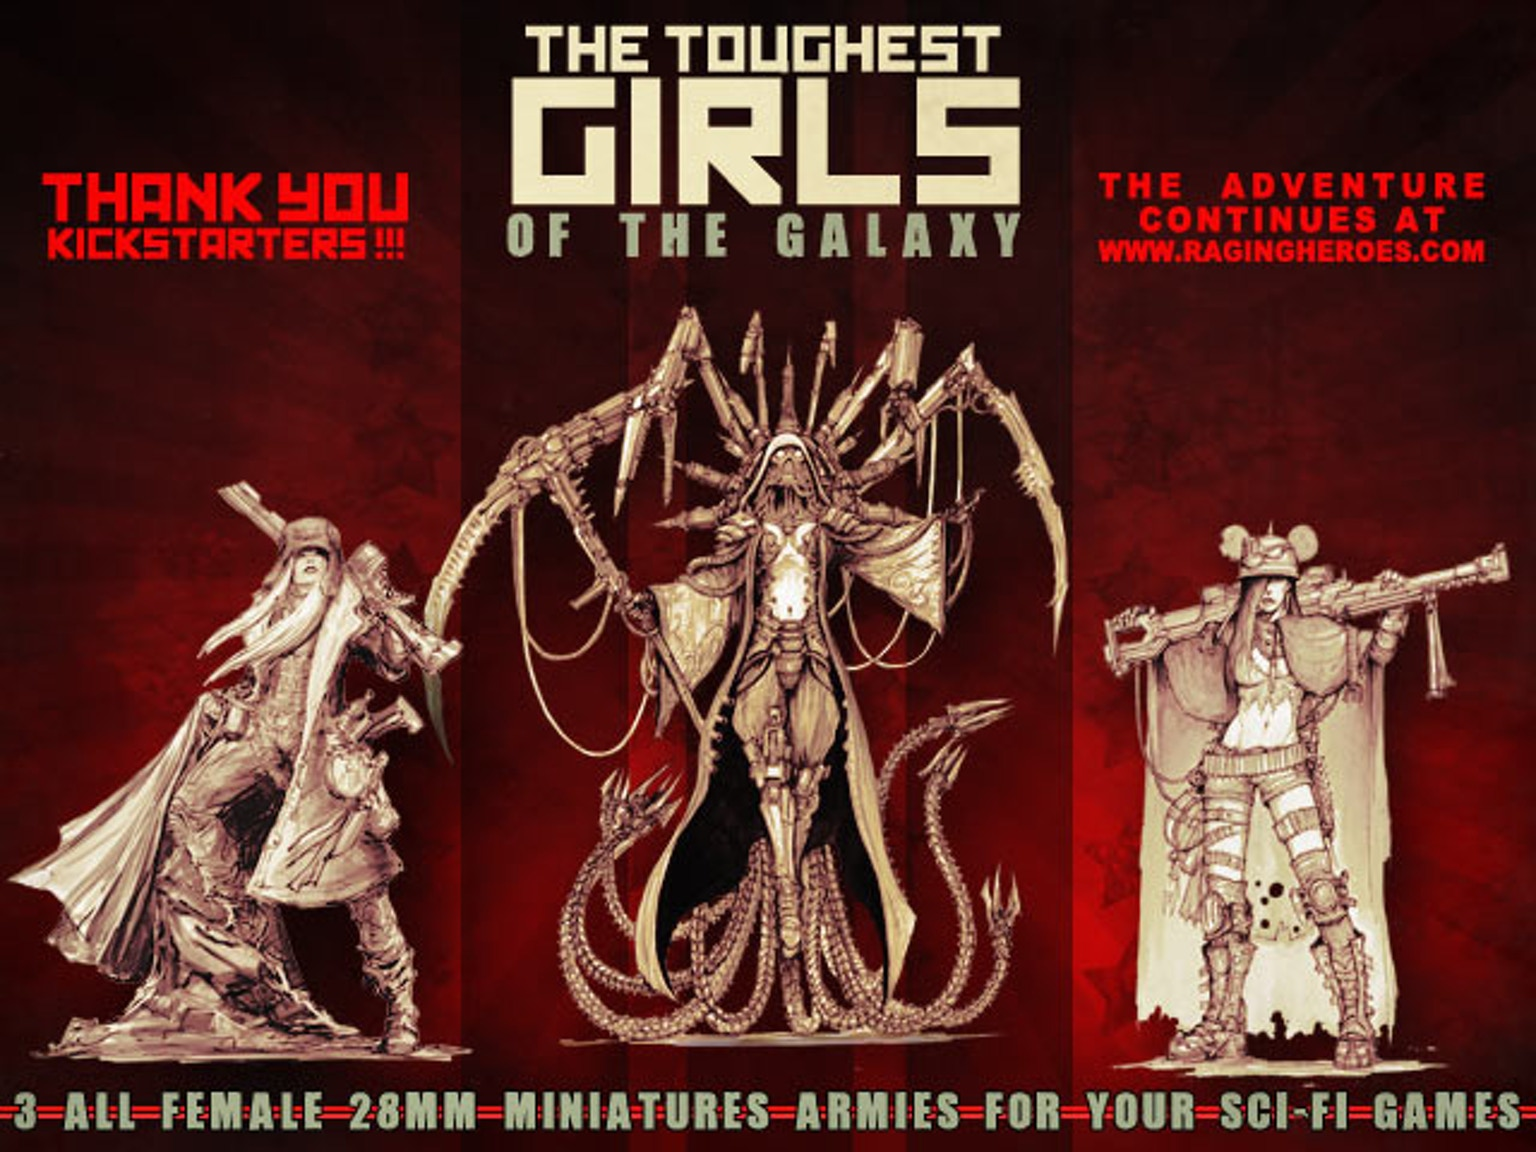 Toughest Girls of the Galaxy